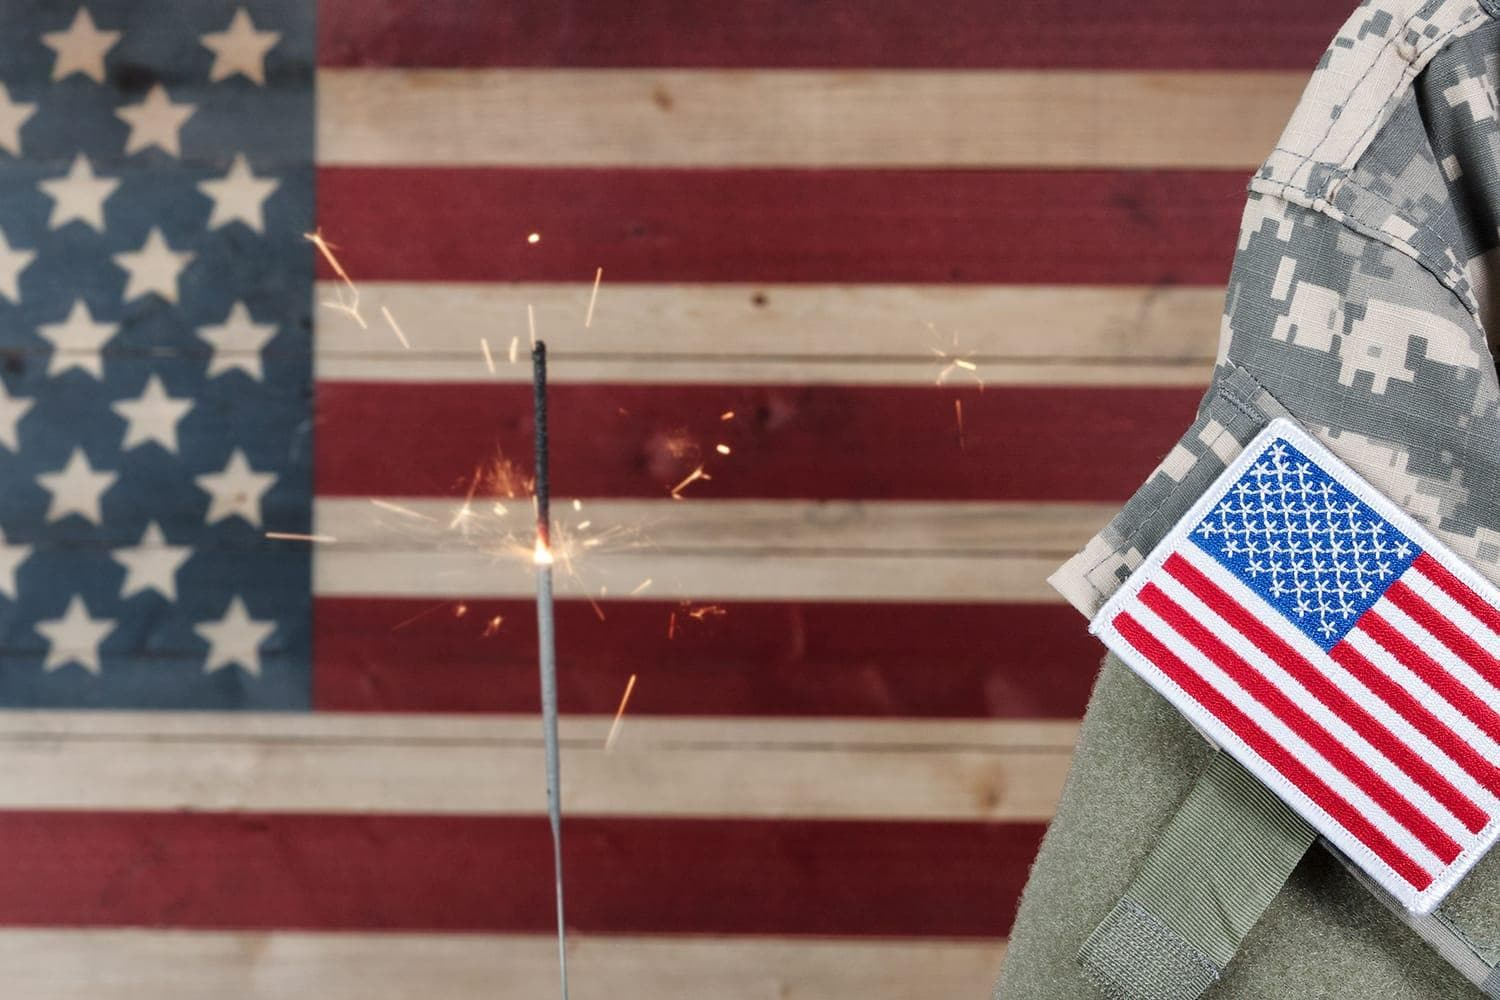 American flag and military uniform